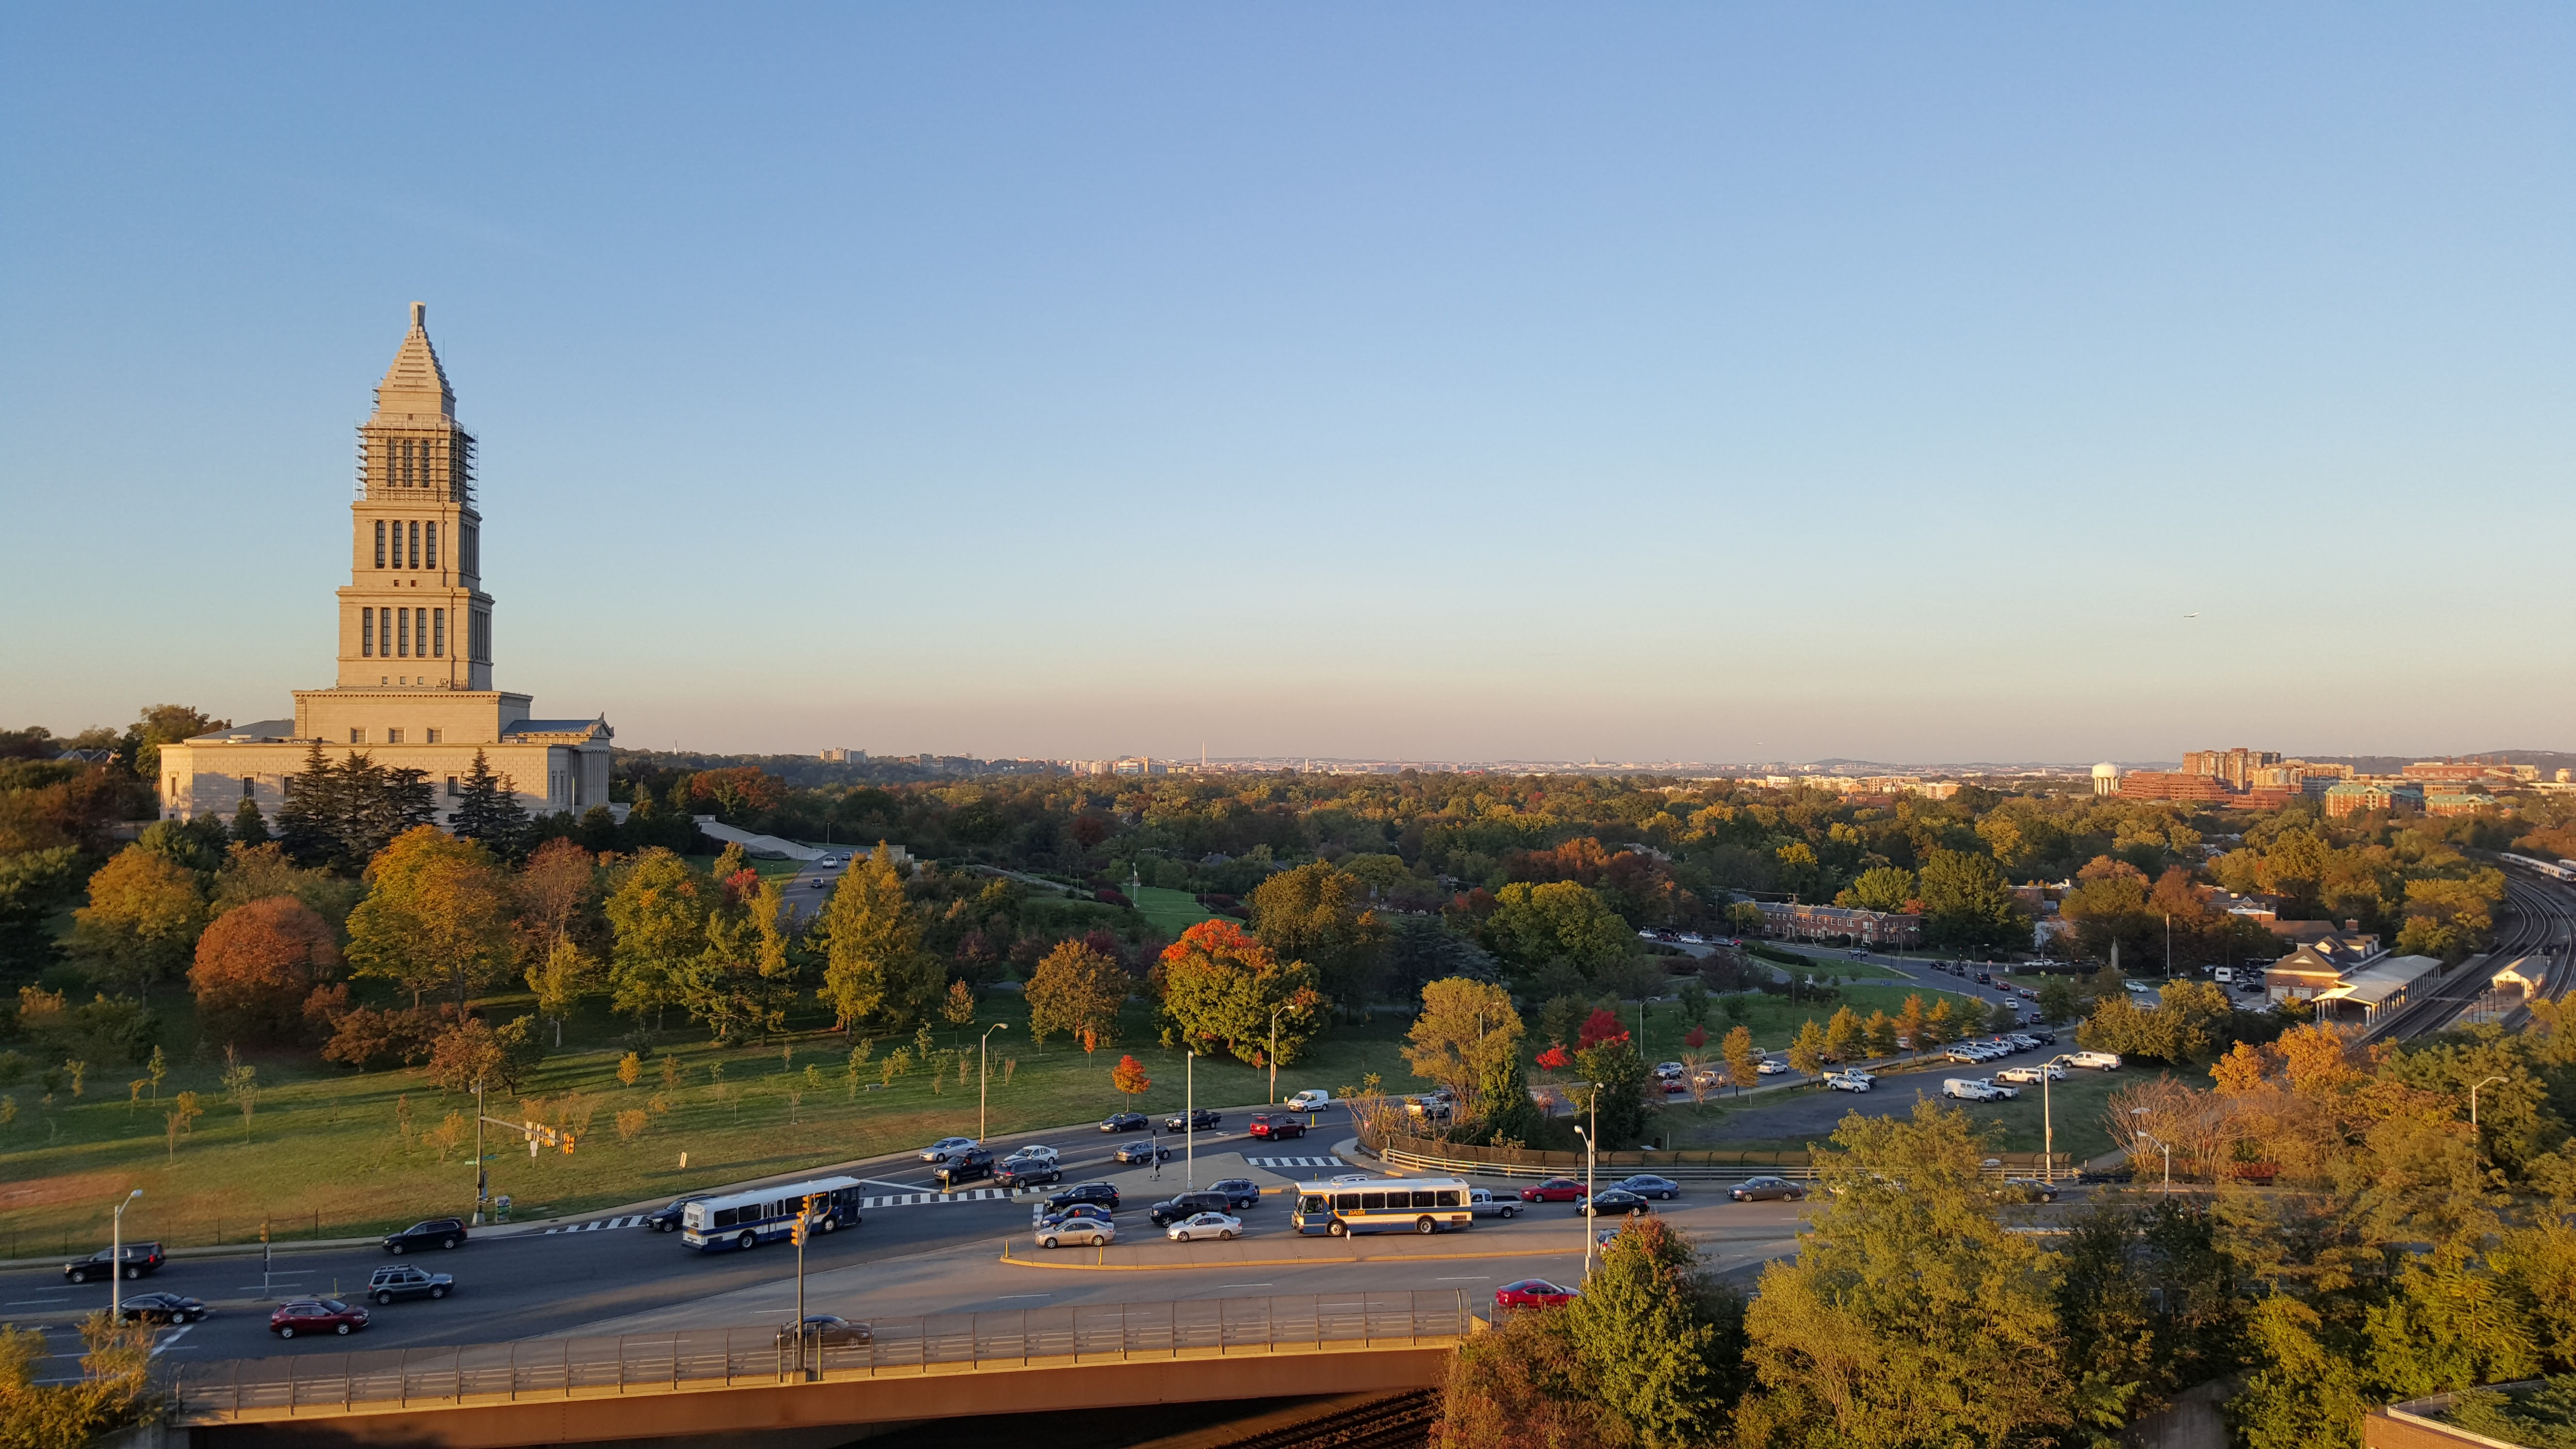 The George Washington Masonic National Memorial in 2015, with Washington, D.C. and Arlington in the distance